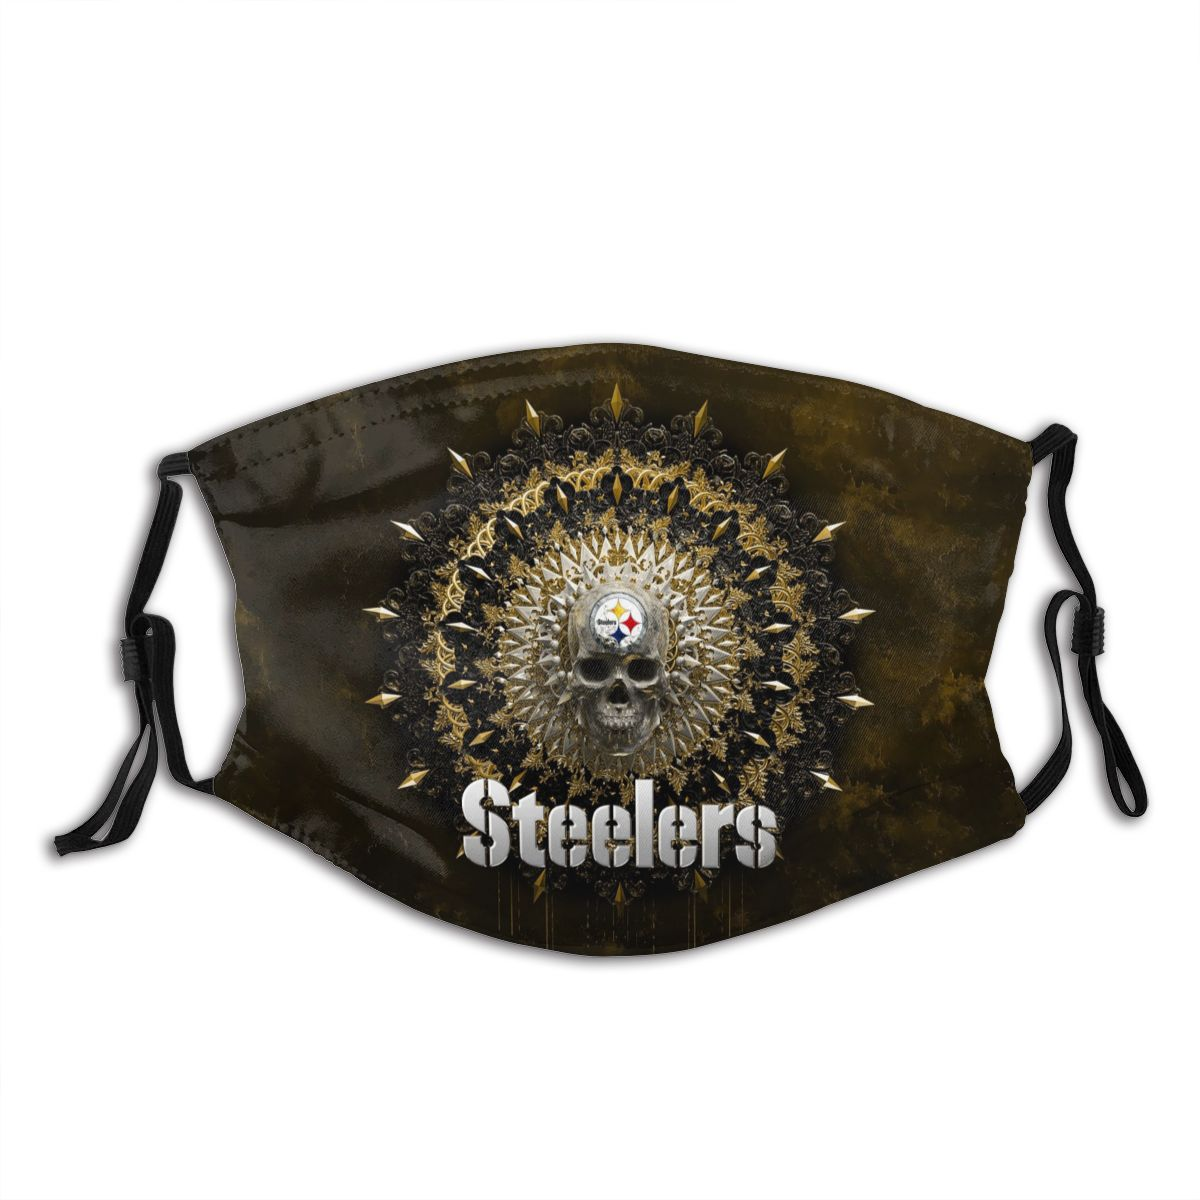 Steelers Adult Cloth Face Covering With Filter